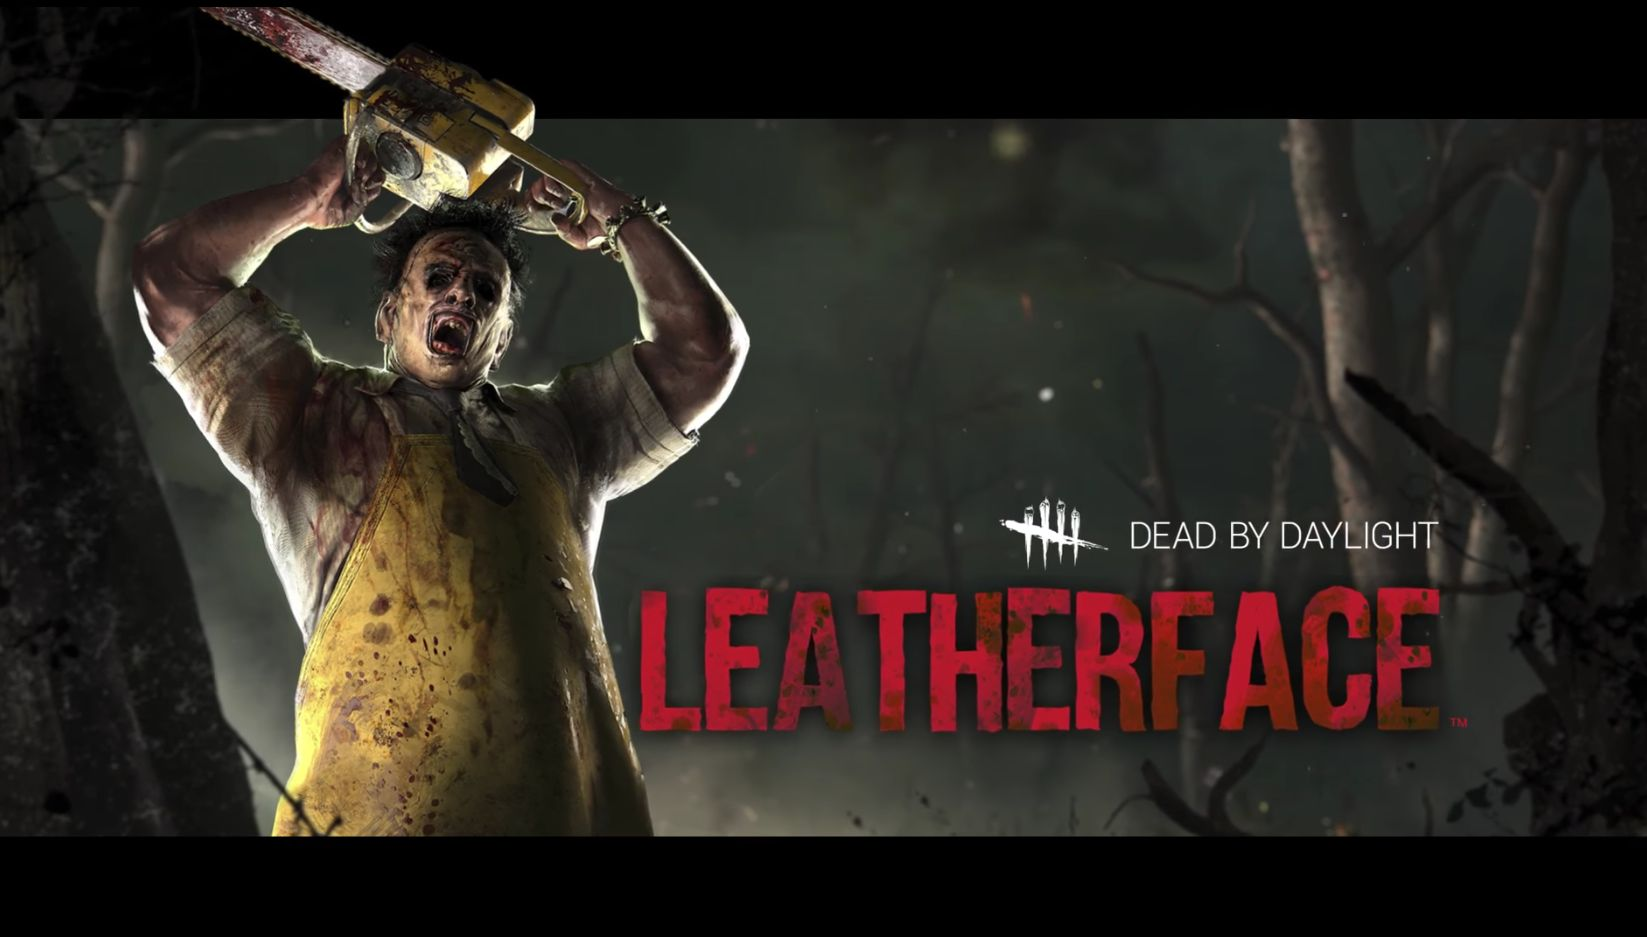 Dead by Daylight Leatherface title